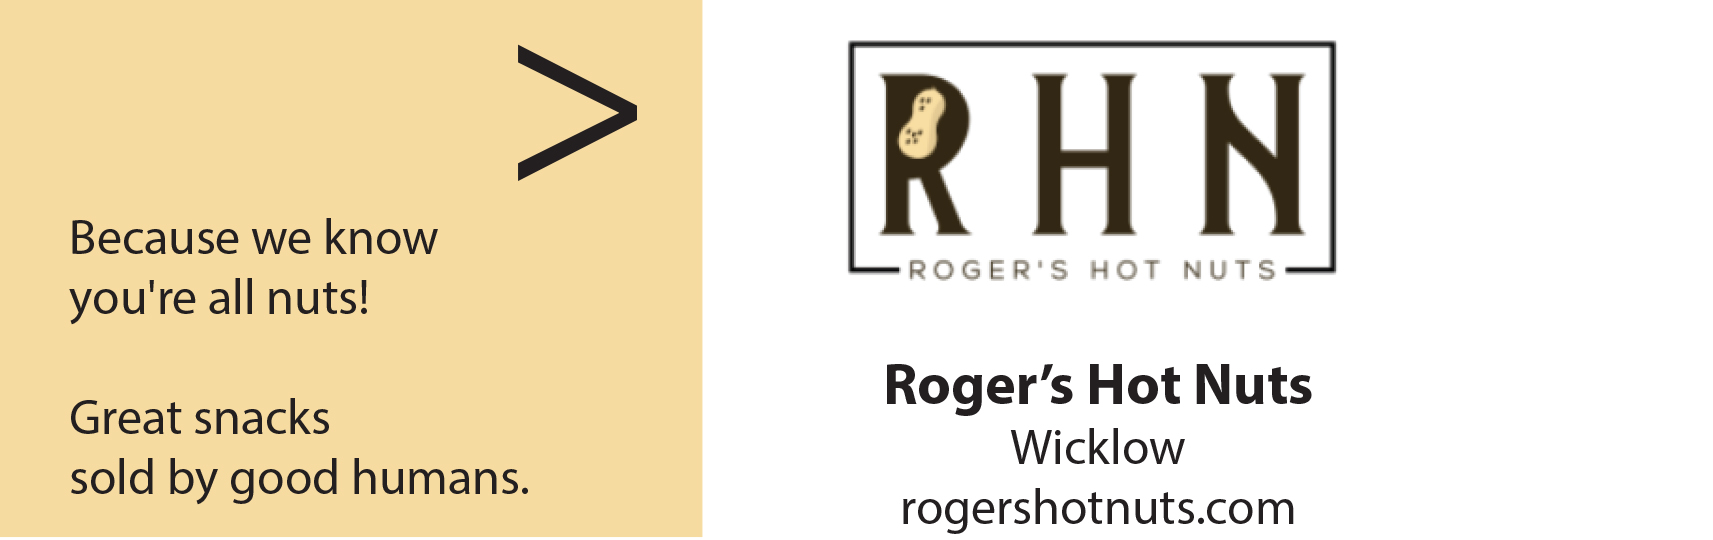 rogers hot nuts logo